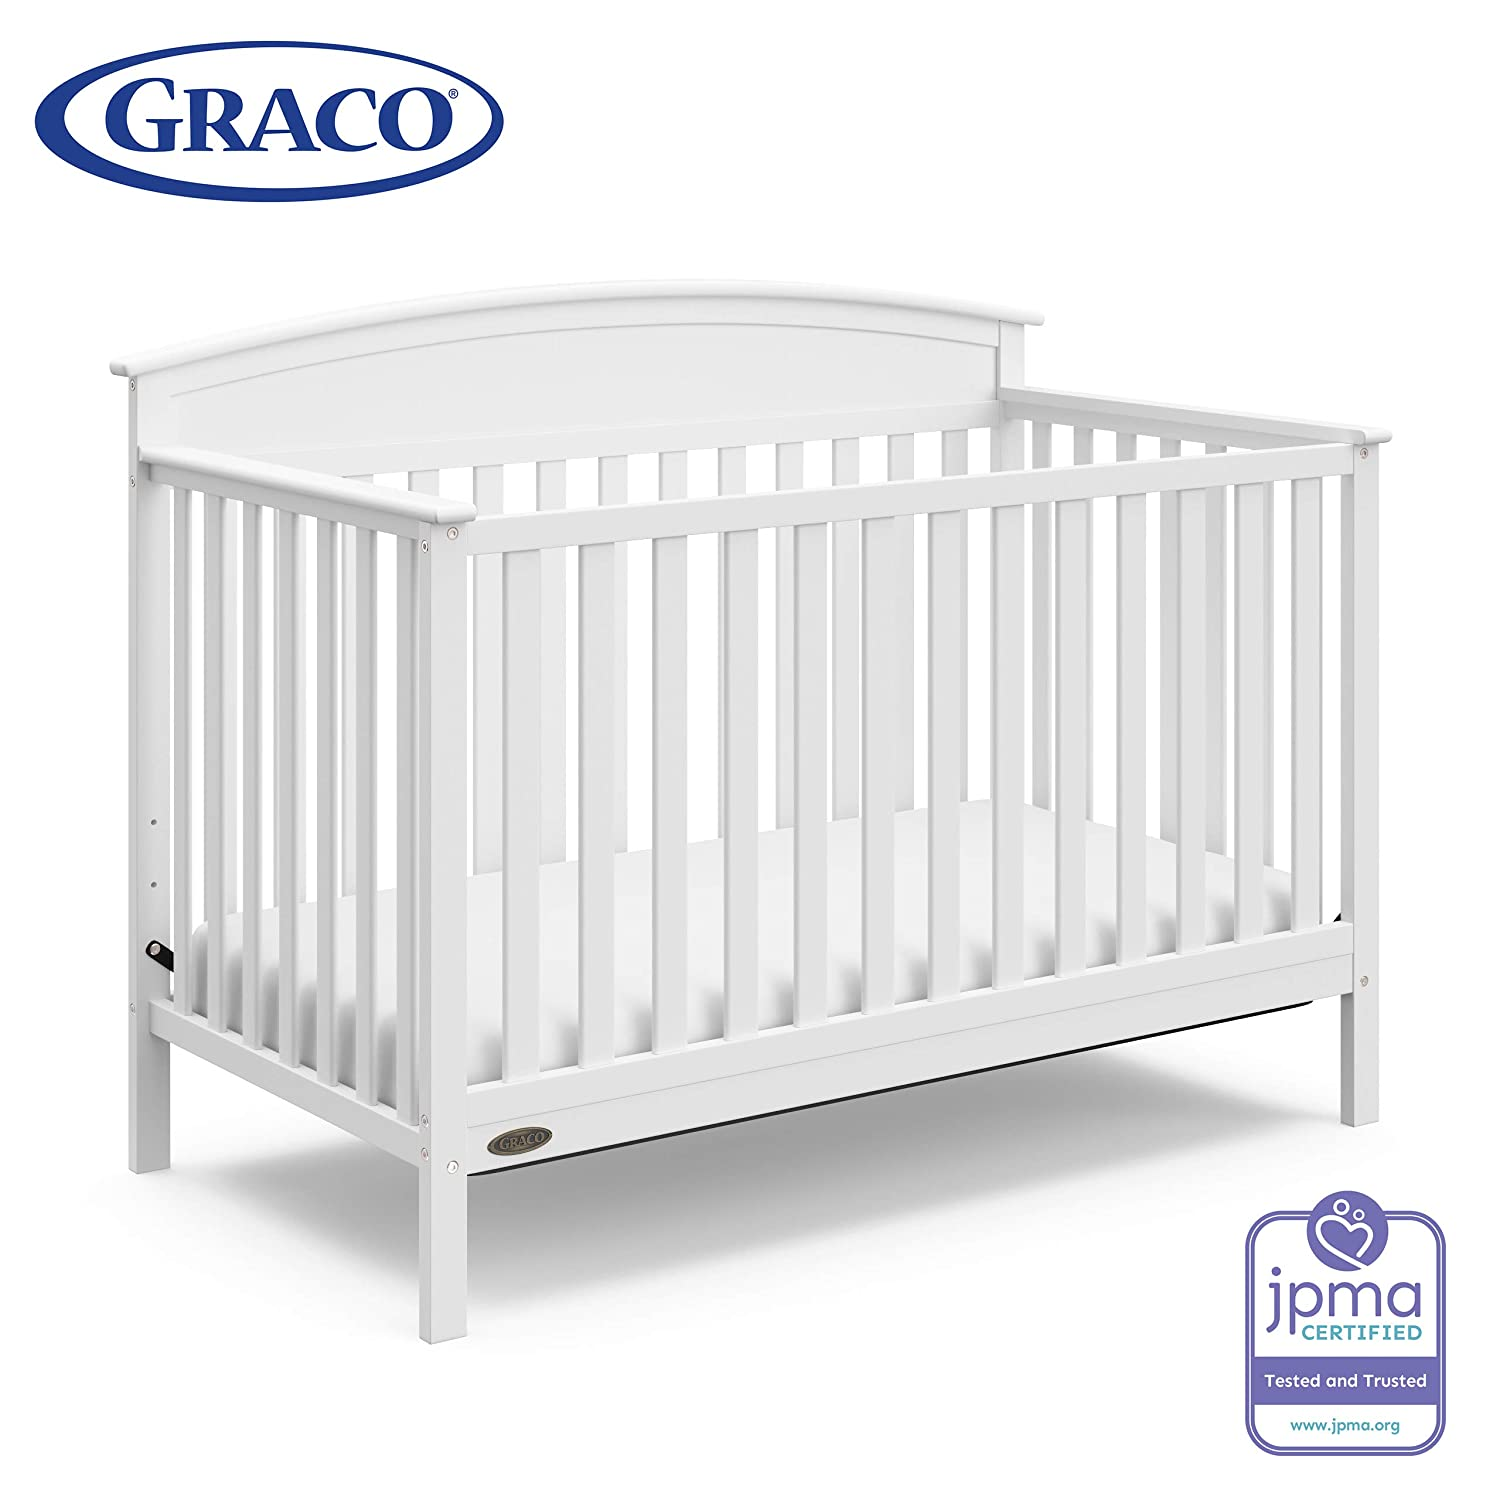 White Graco Brenton 4-in-1 Convertible Crib